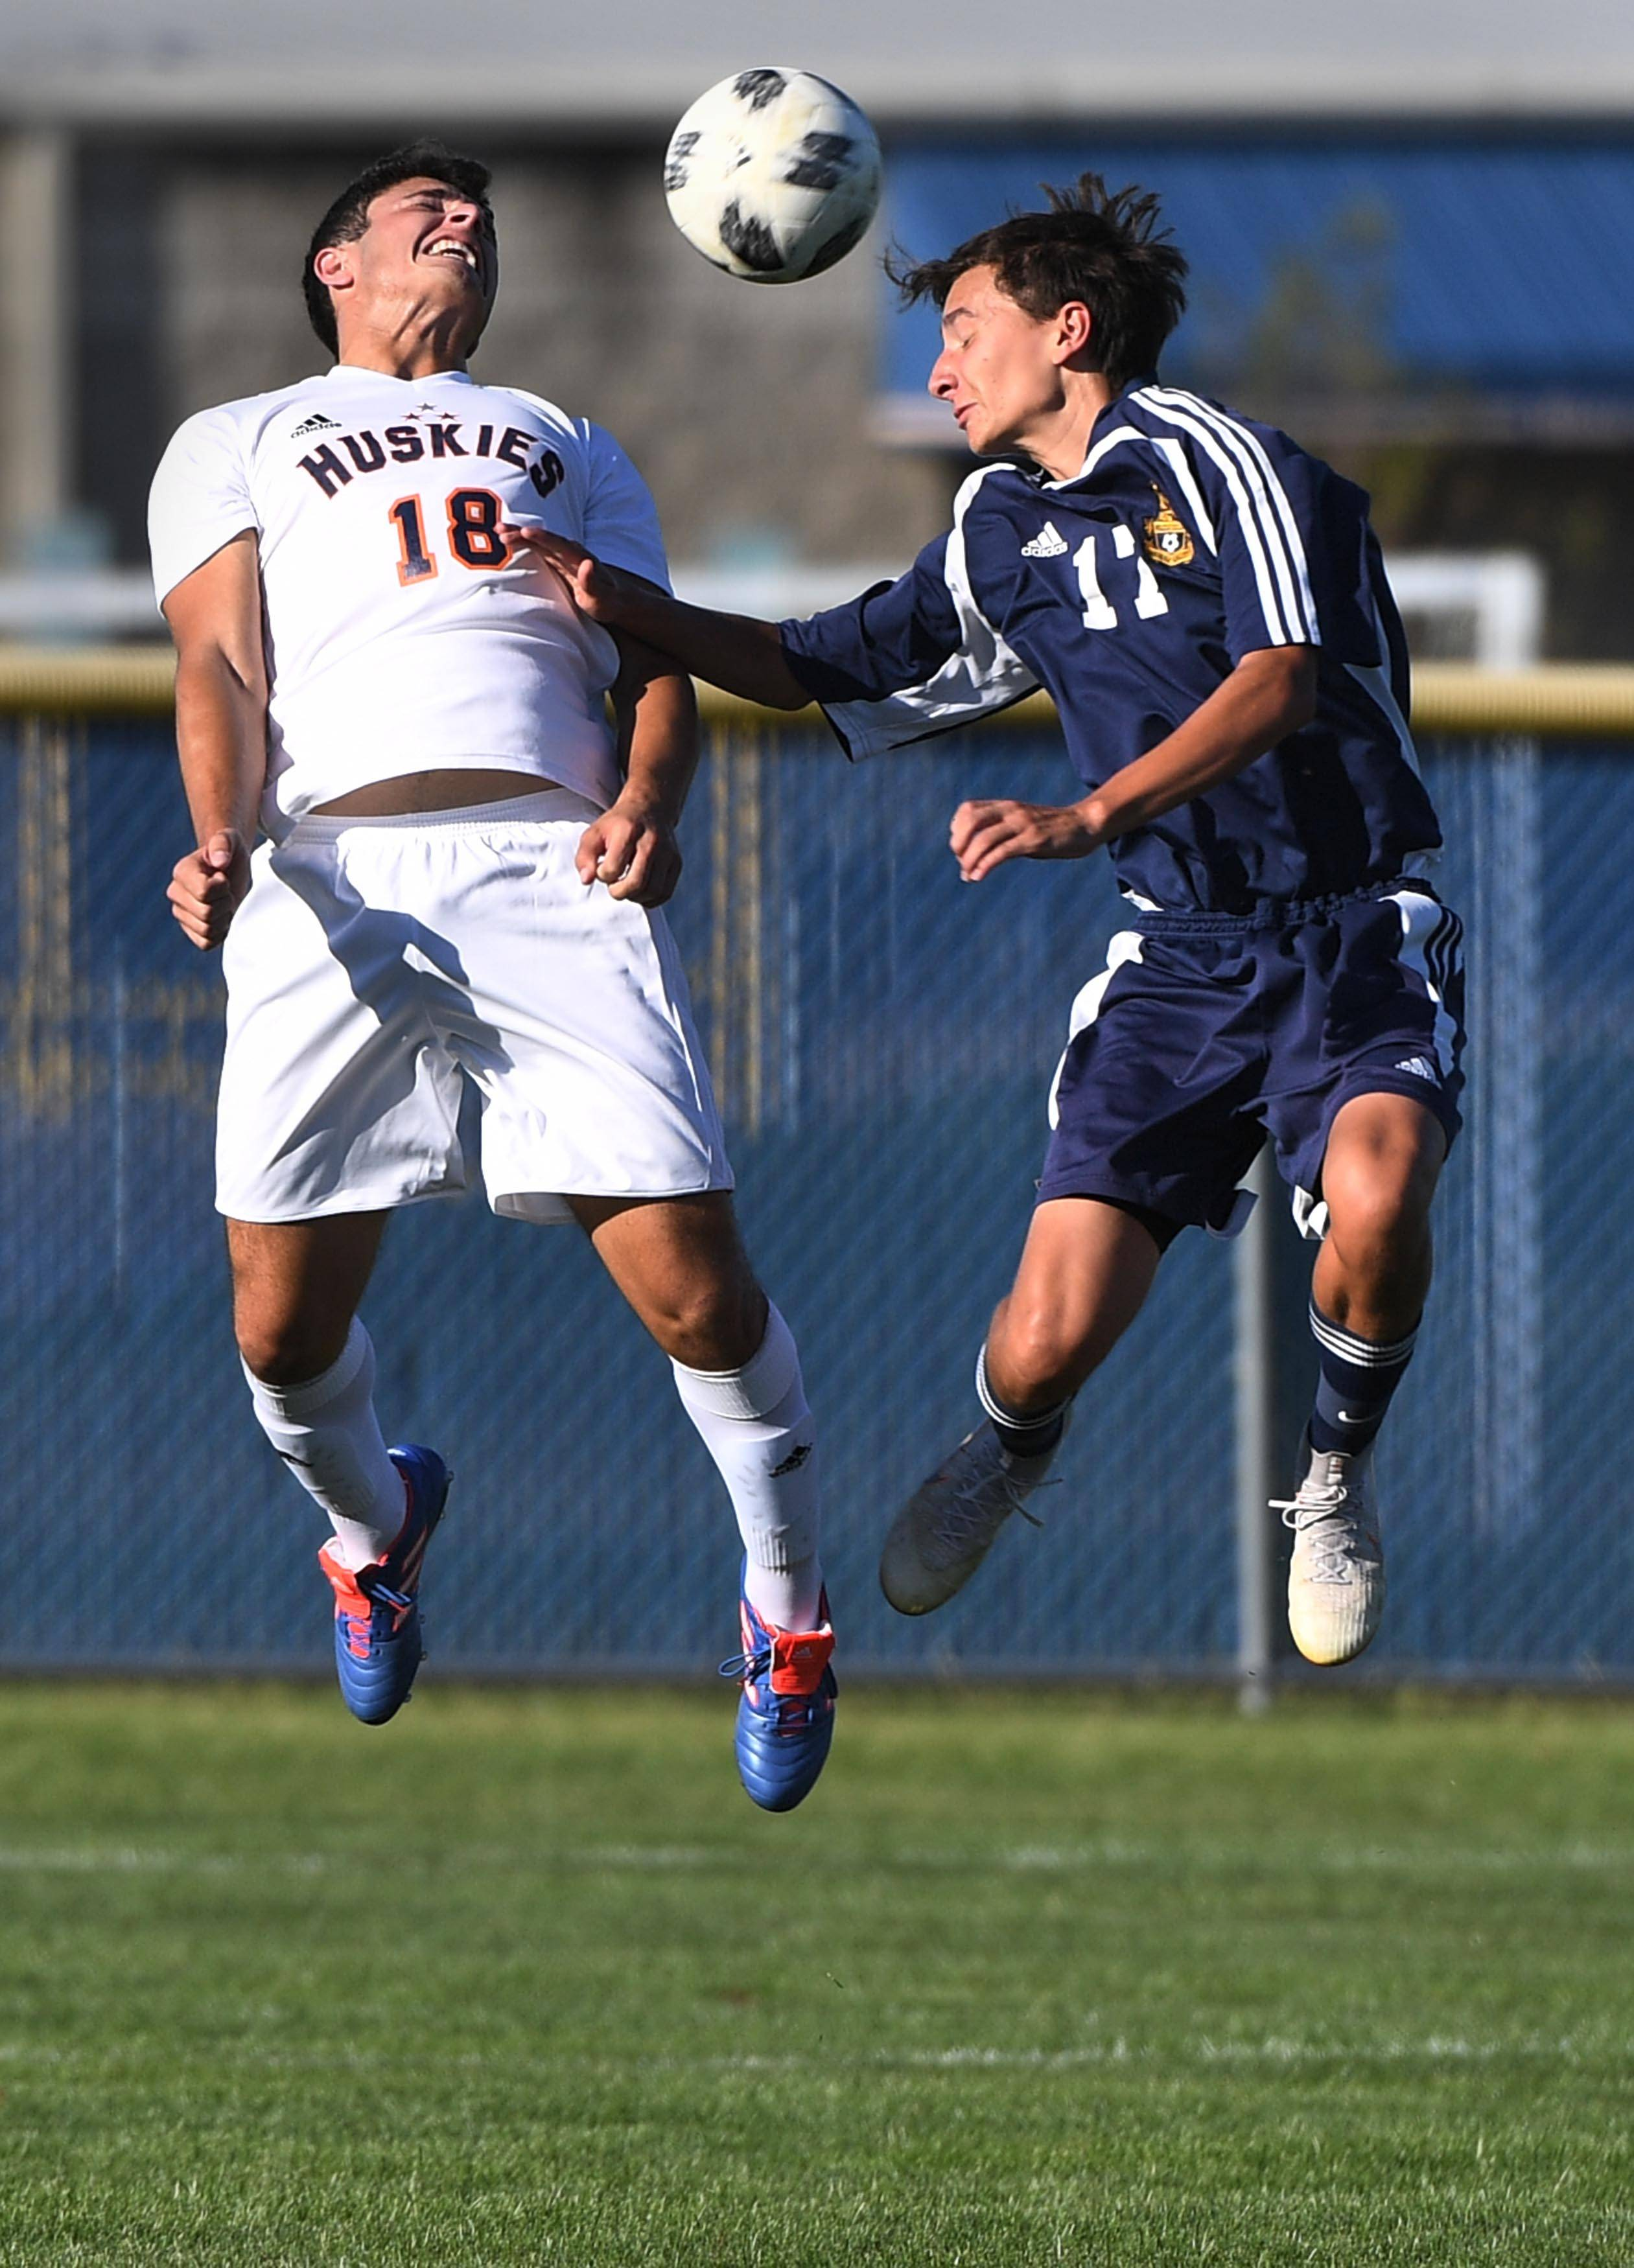 Naperville North's Christian Romano and Neuqua Valley's Jaison Chisnell compete for  a header in a boys soccer game Tuesday in Naperville.